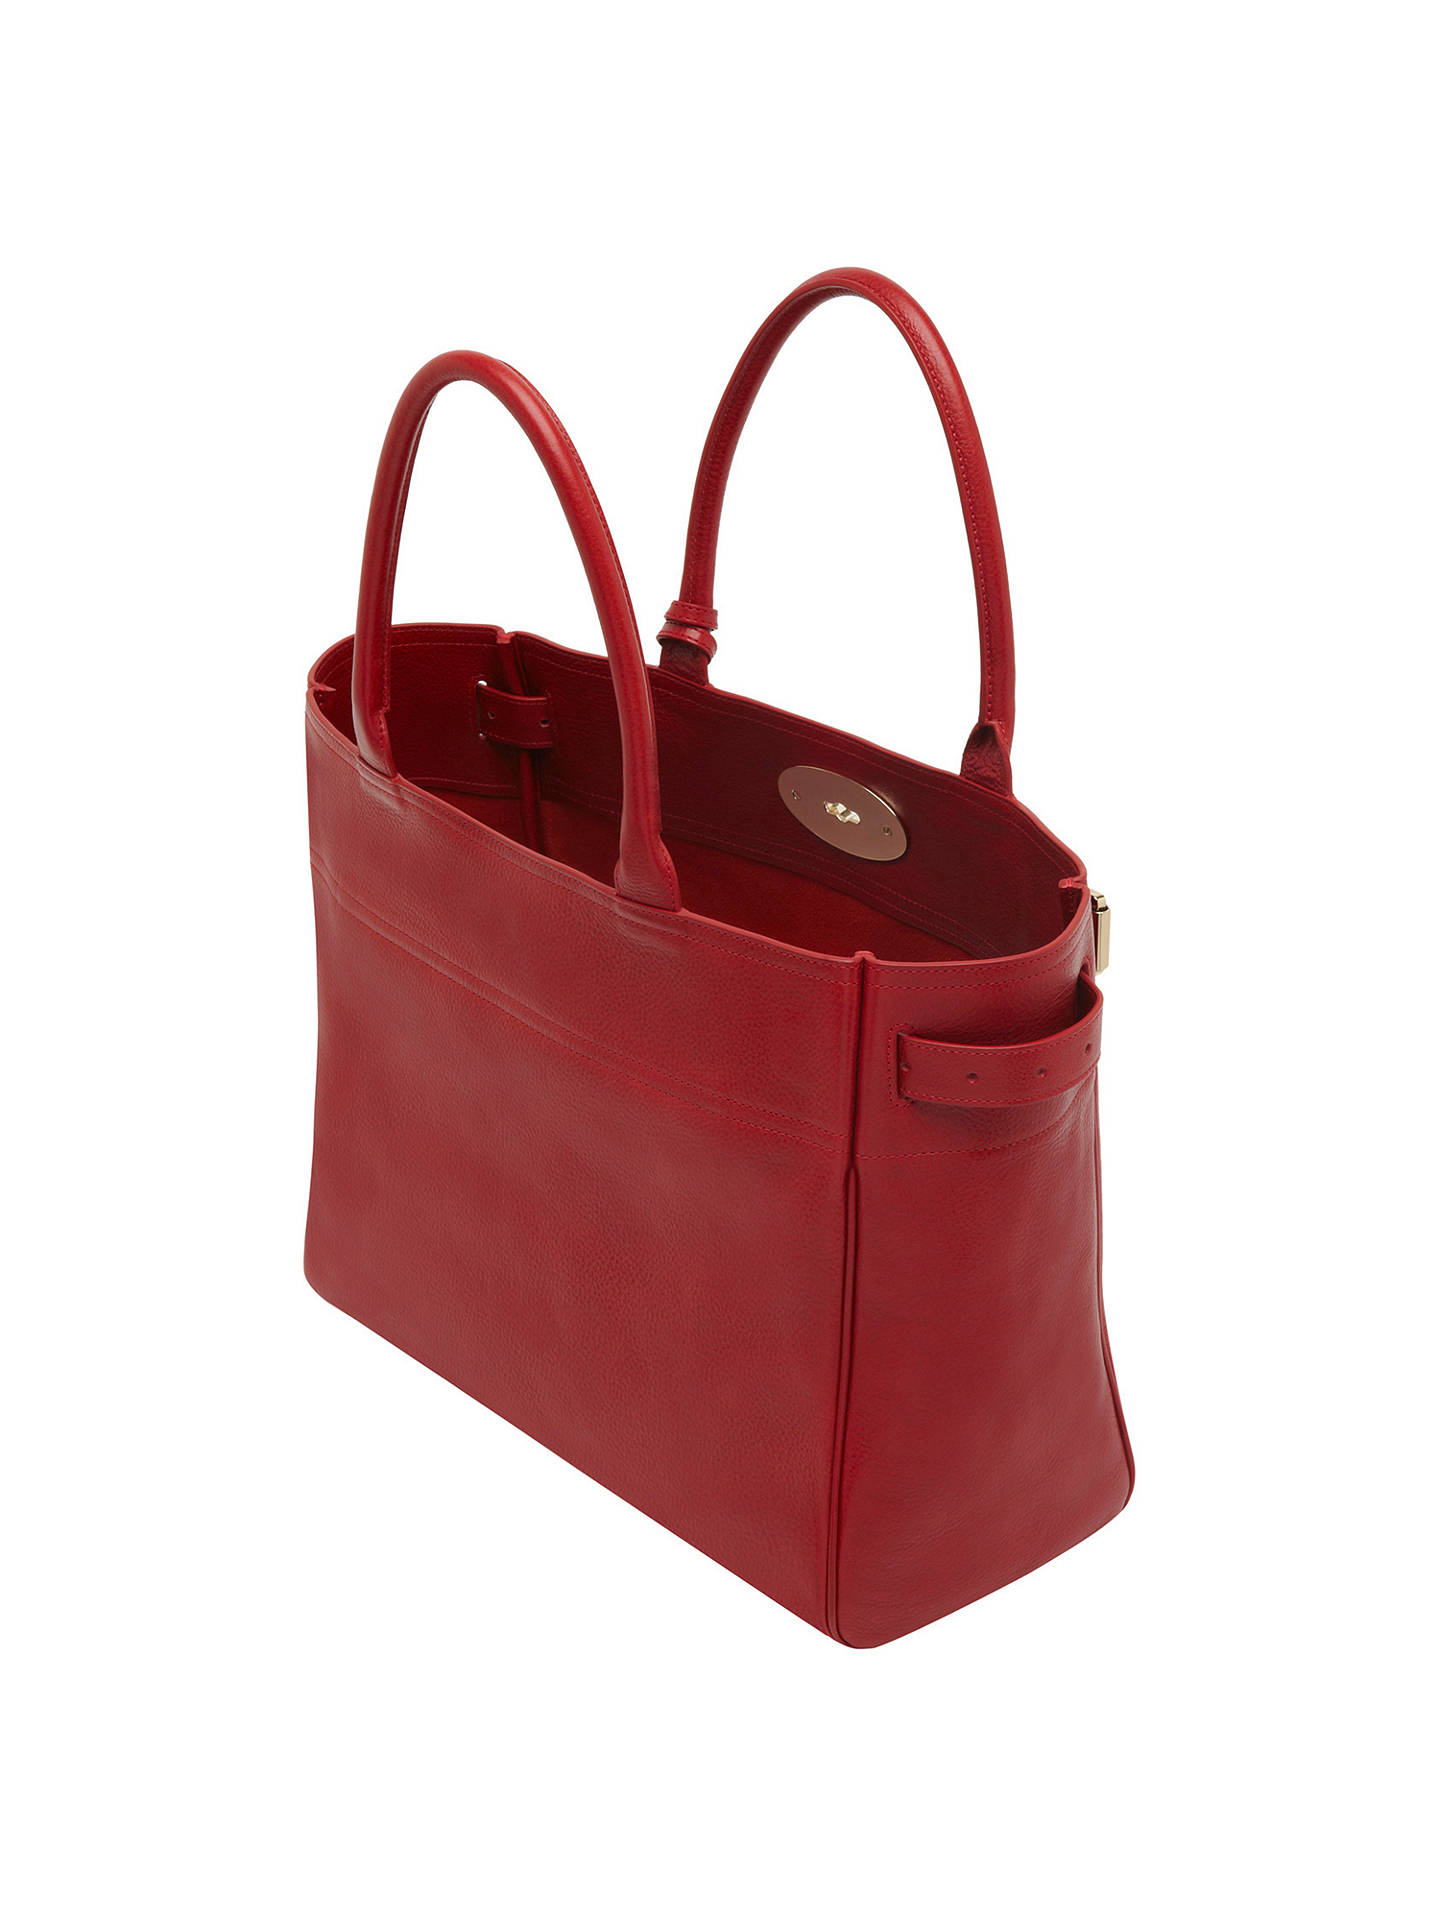 Mulberry Bayswater Leather Tote Bag Poppy Online At Johnlewis